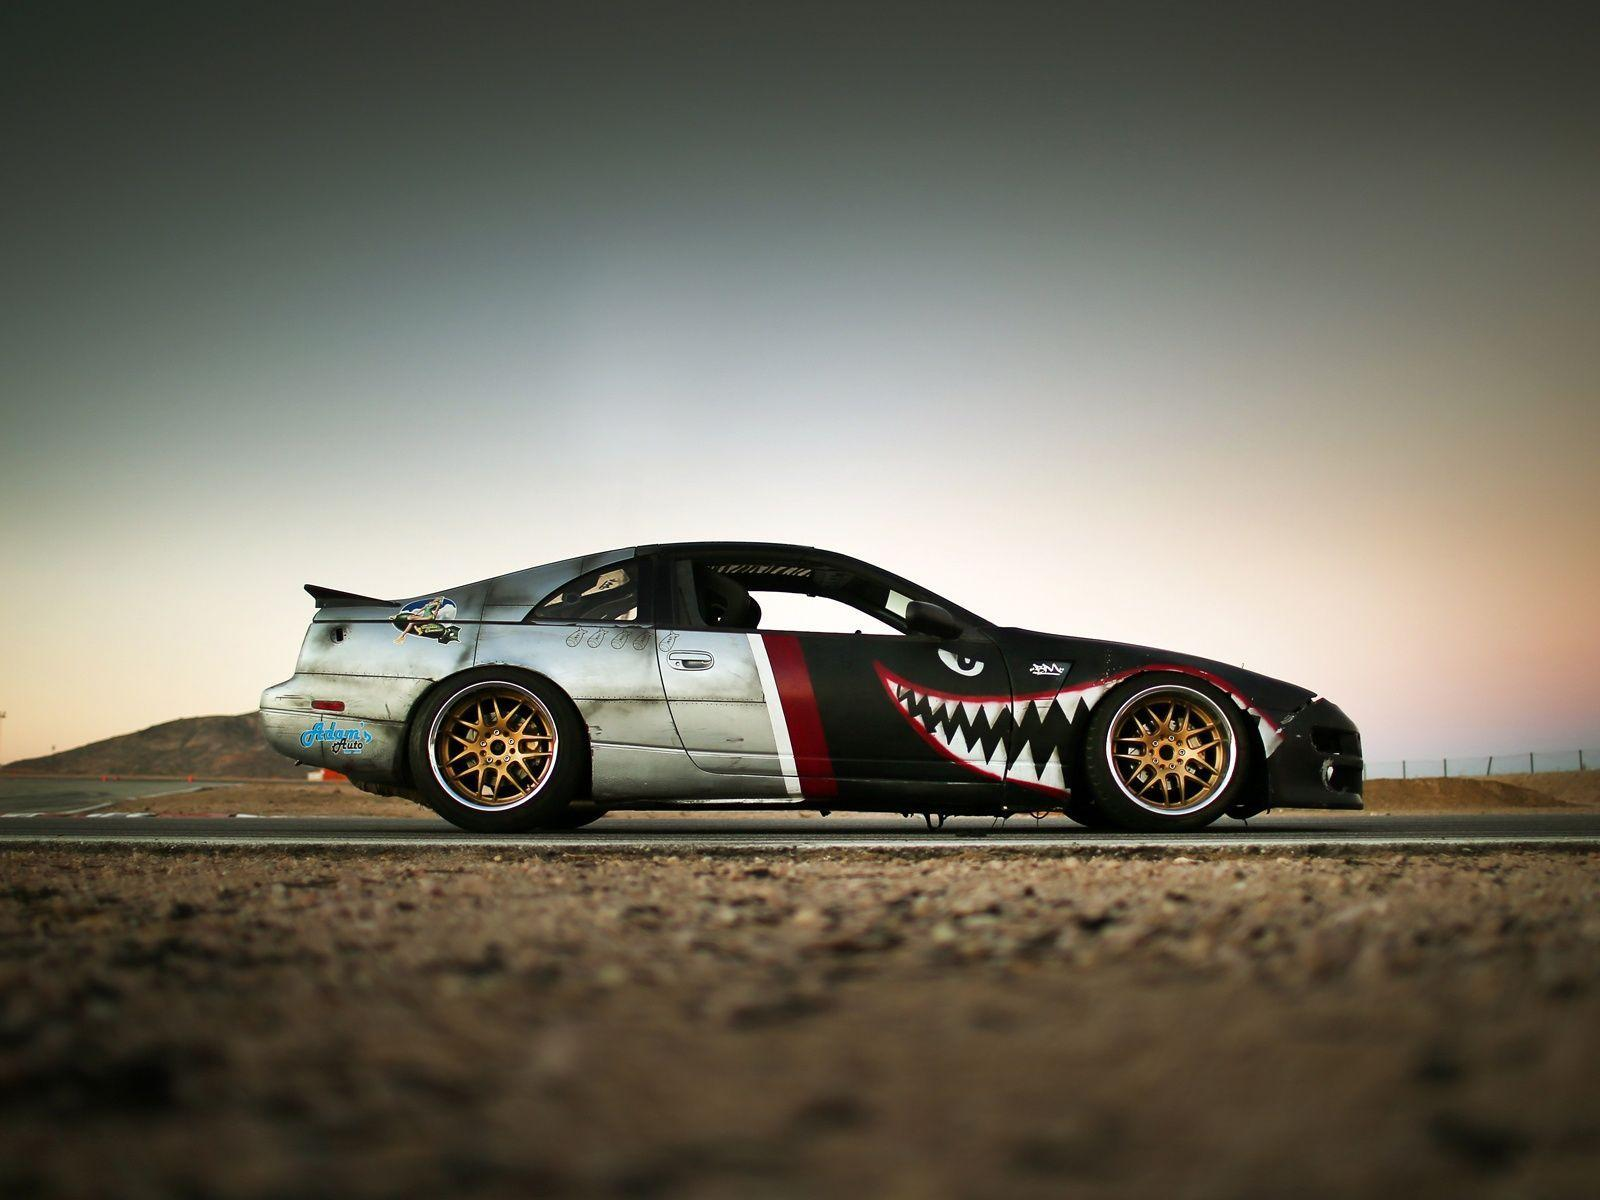 1600x1200 Nissan 300z z32 drift car Wallpaper